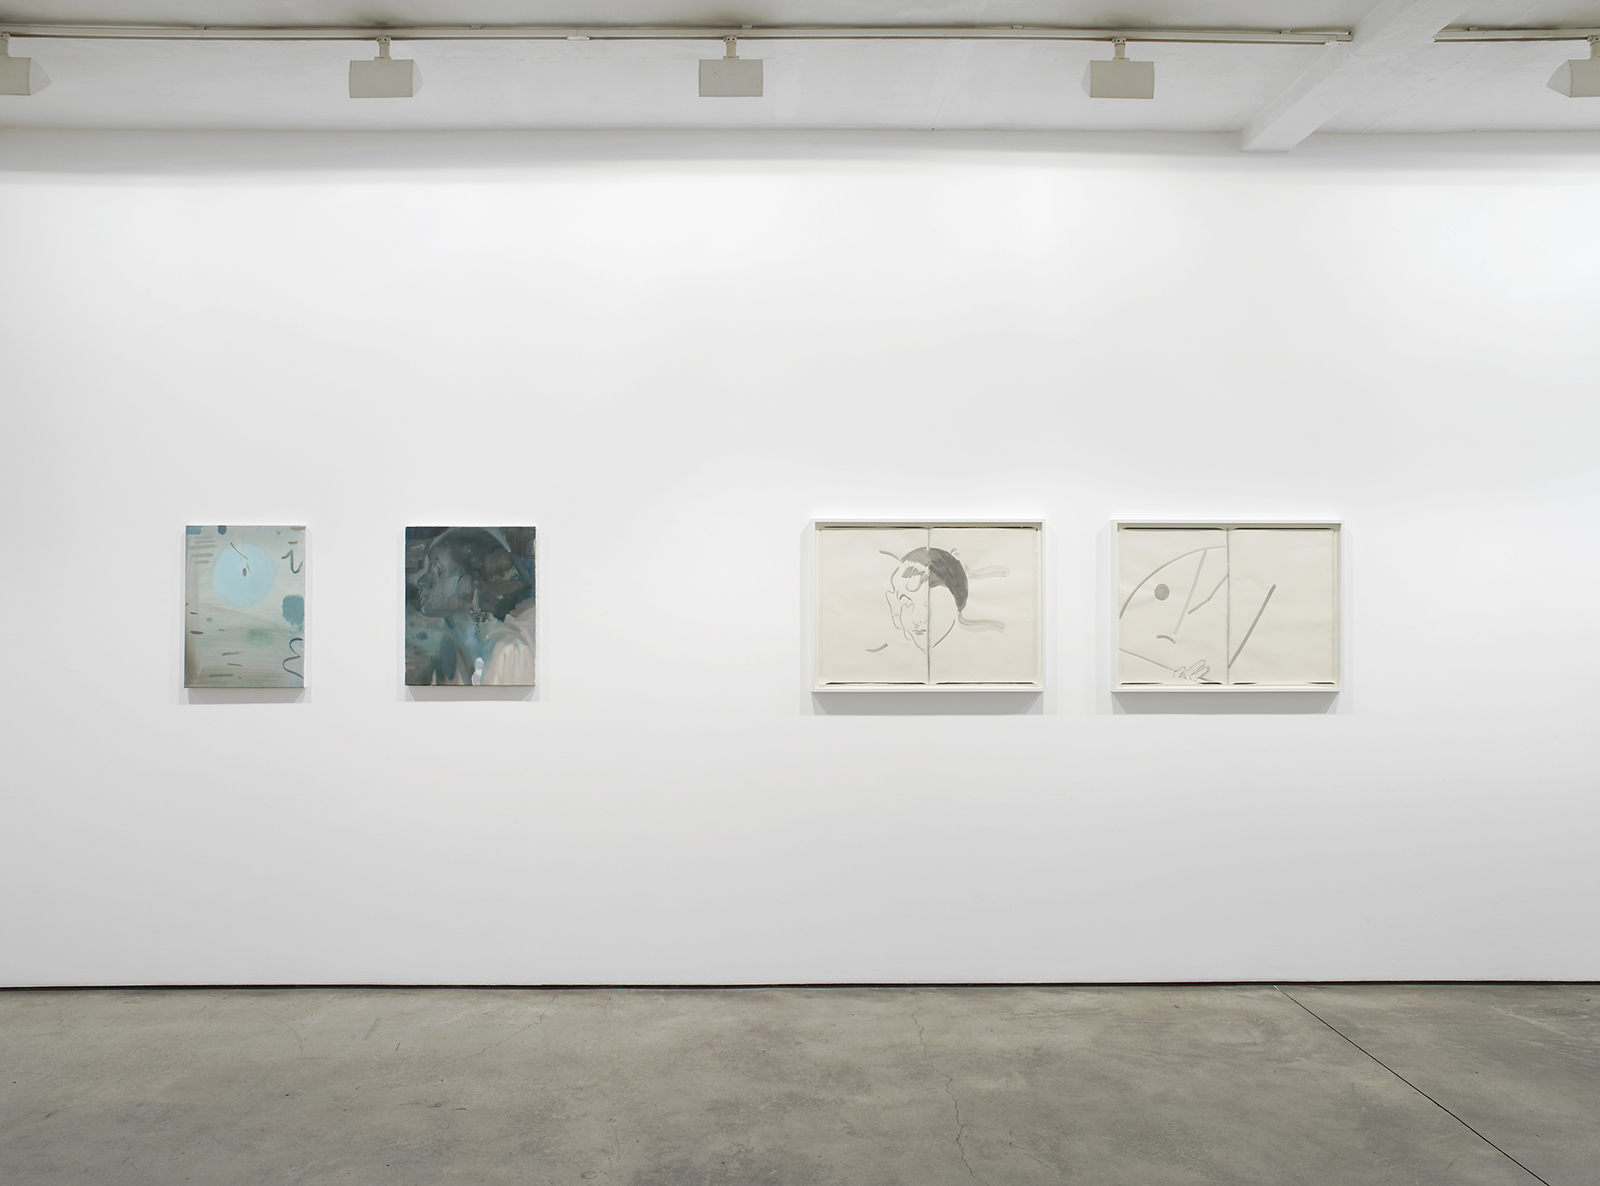 5 - Kaye Donachie at Maureen Paley - 4.02.2014